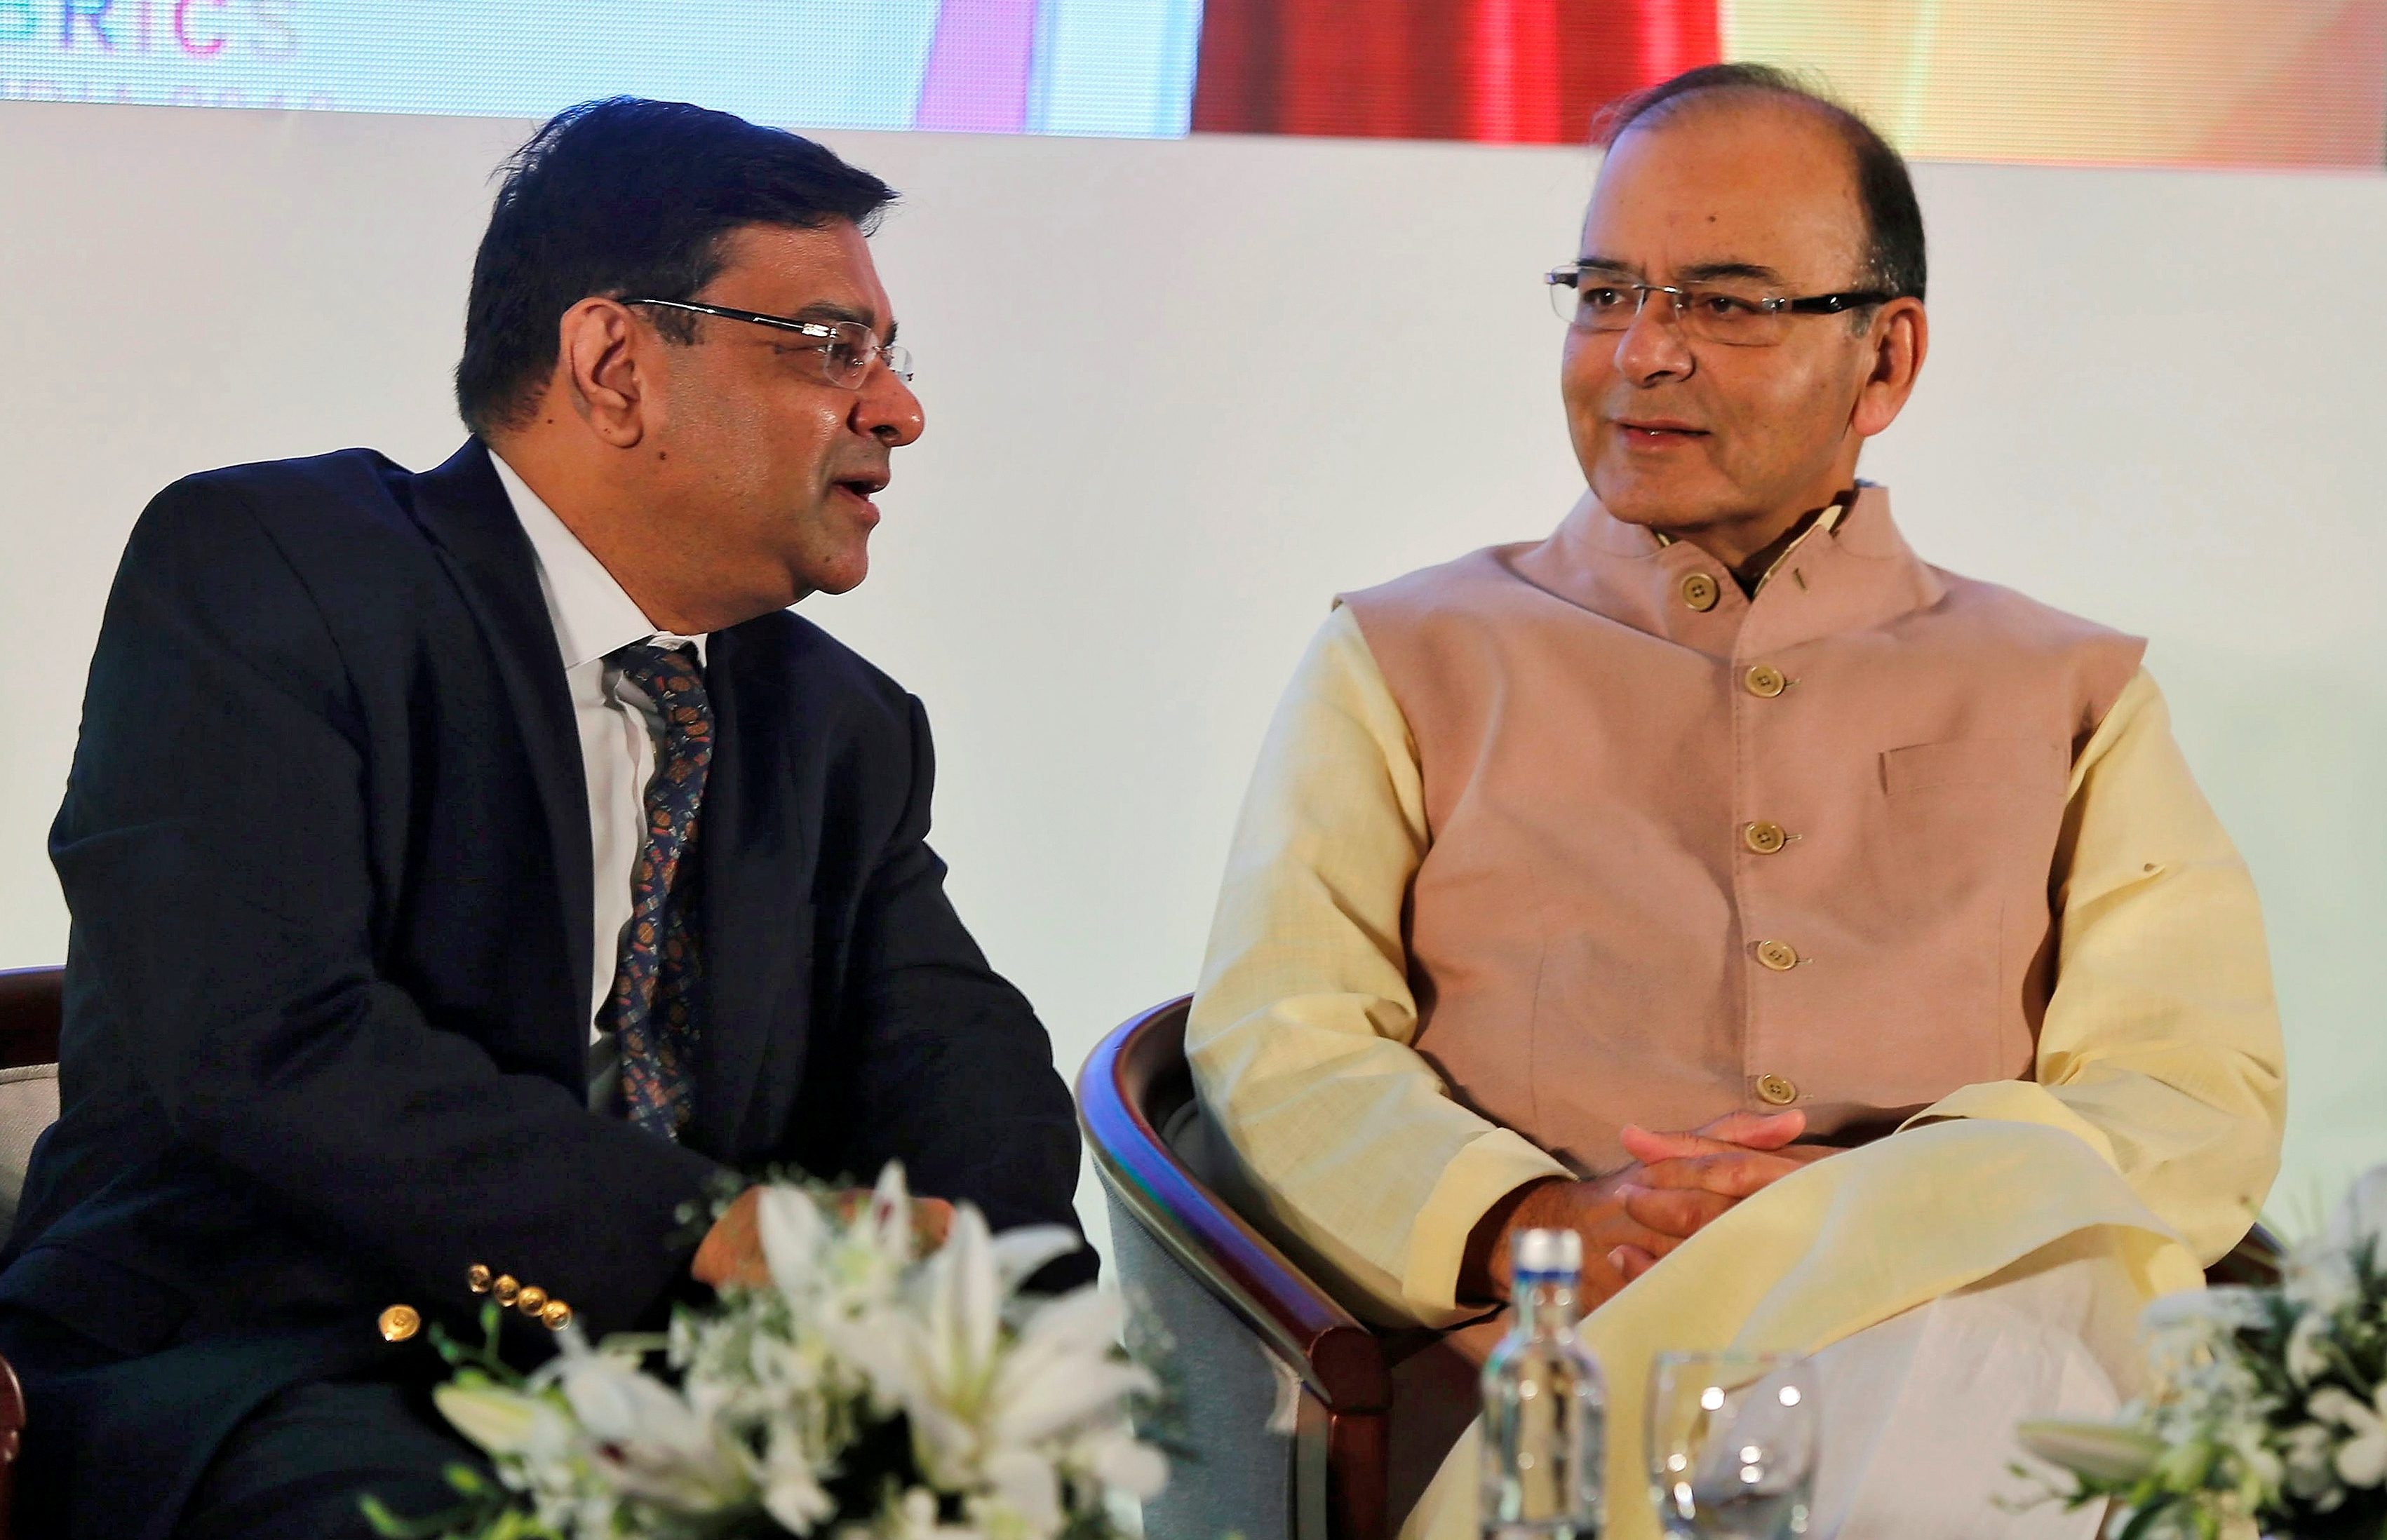 The Reserve Bank of India (RBI) Governor Urjit Patel speaks with India's Finance Minister Arun Jaitley (R) at a seminar in Mumbai, India, October 13, 2016.  - S1BEUGSJAZAA